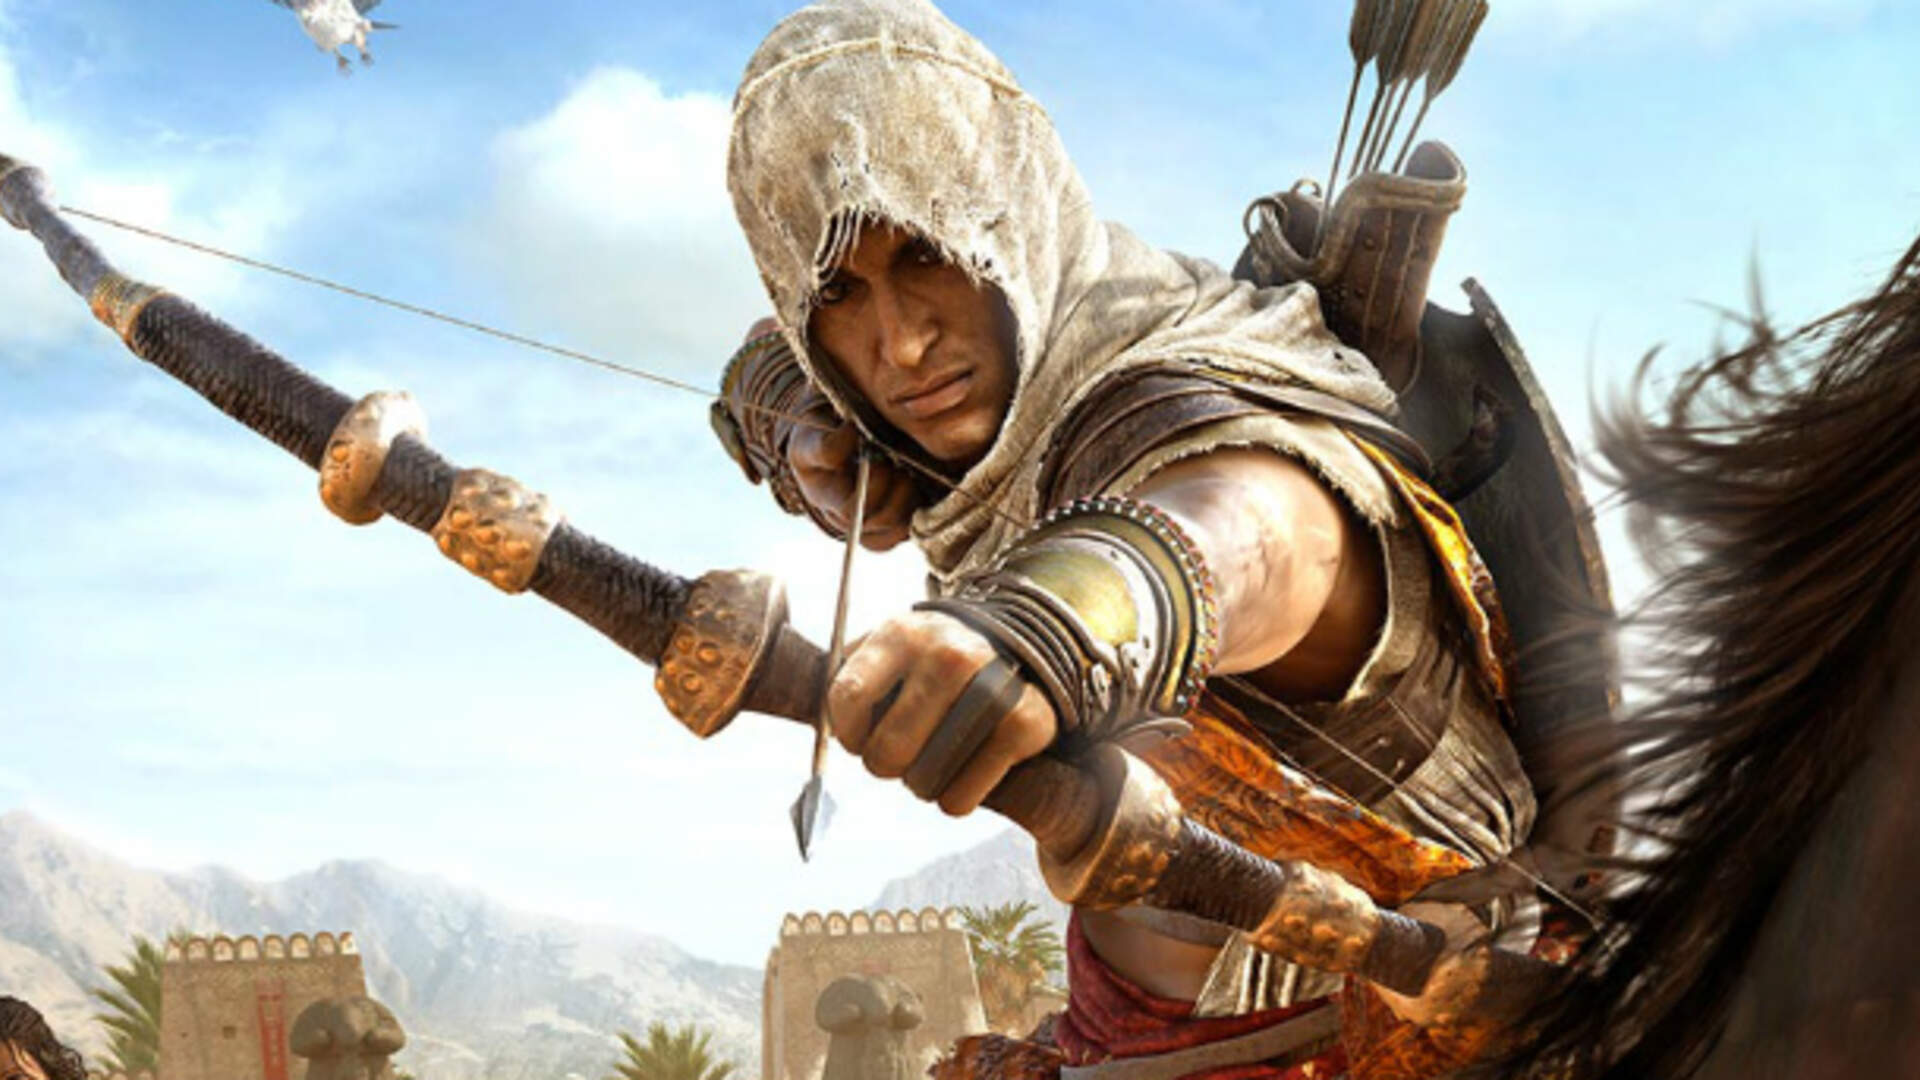 Assassin's Creed Origins Players Report Graphical Downgrades After Recent Patch